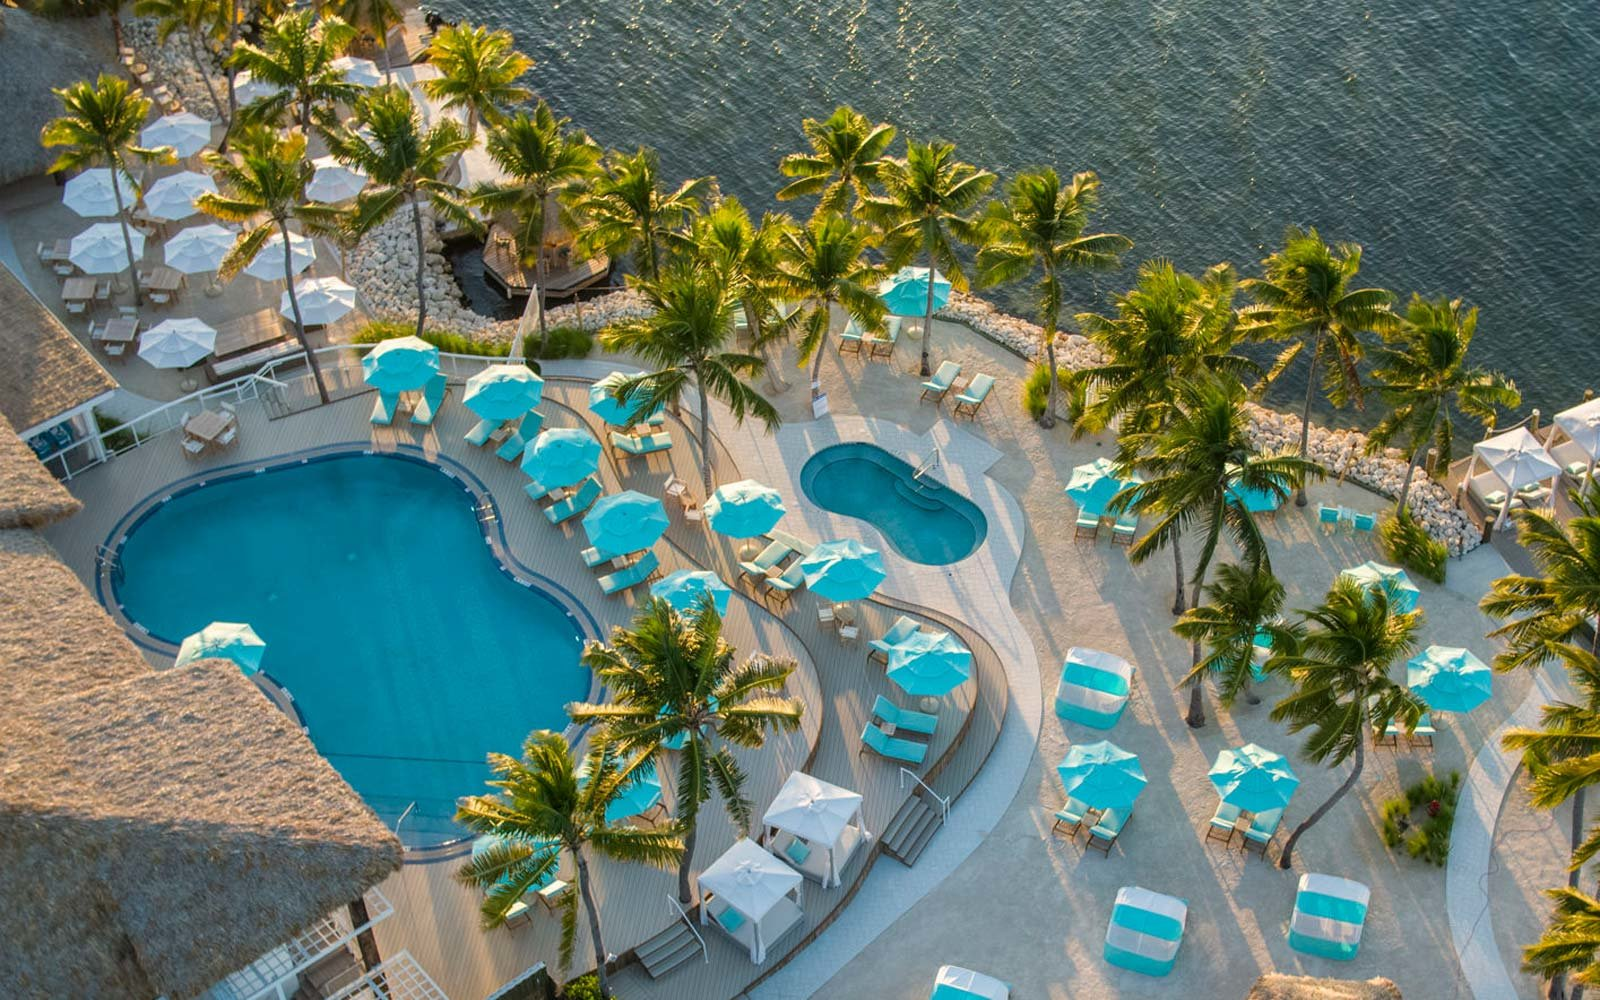 The First All-inclusive Resort in the Florida Keys Is Now Open (and It's Just As Dreamy As You'd Expect)